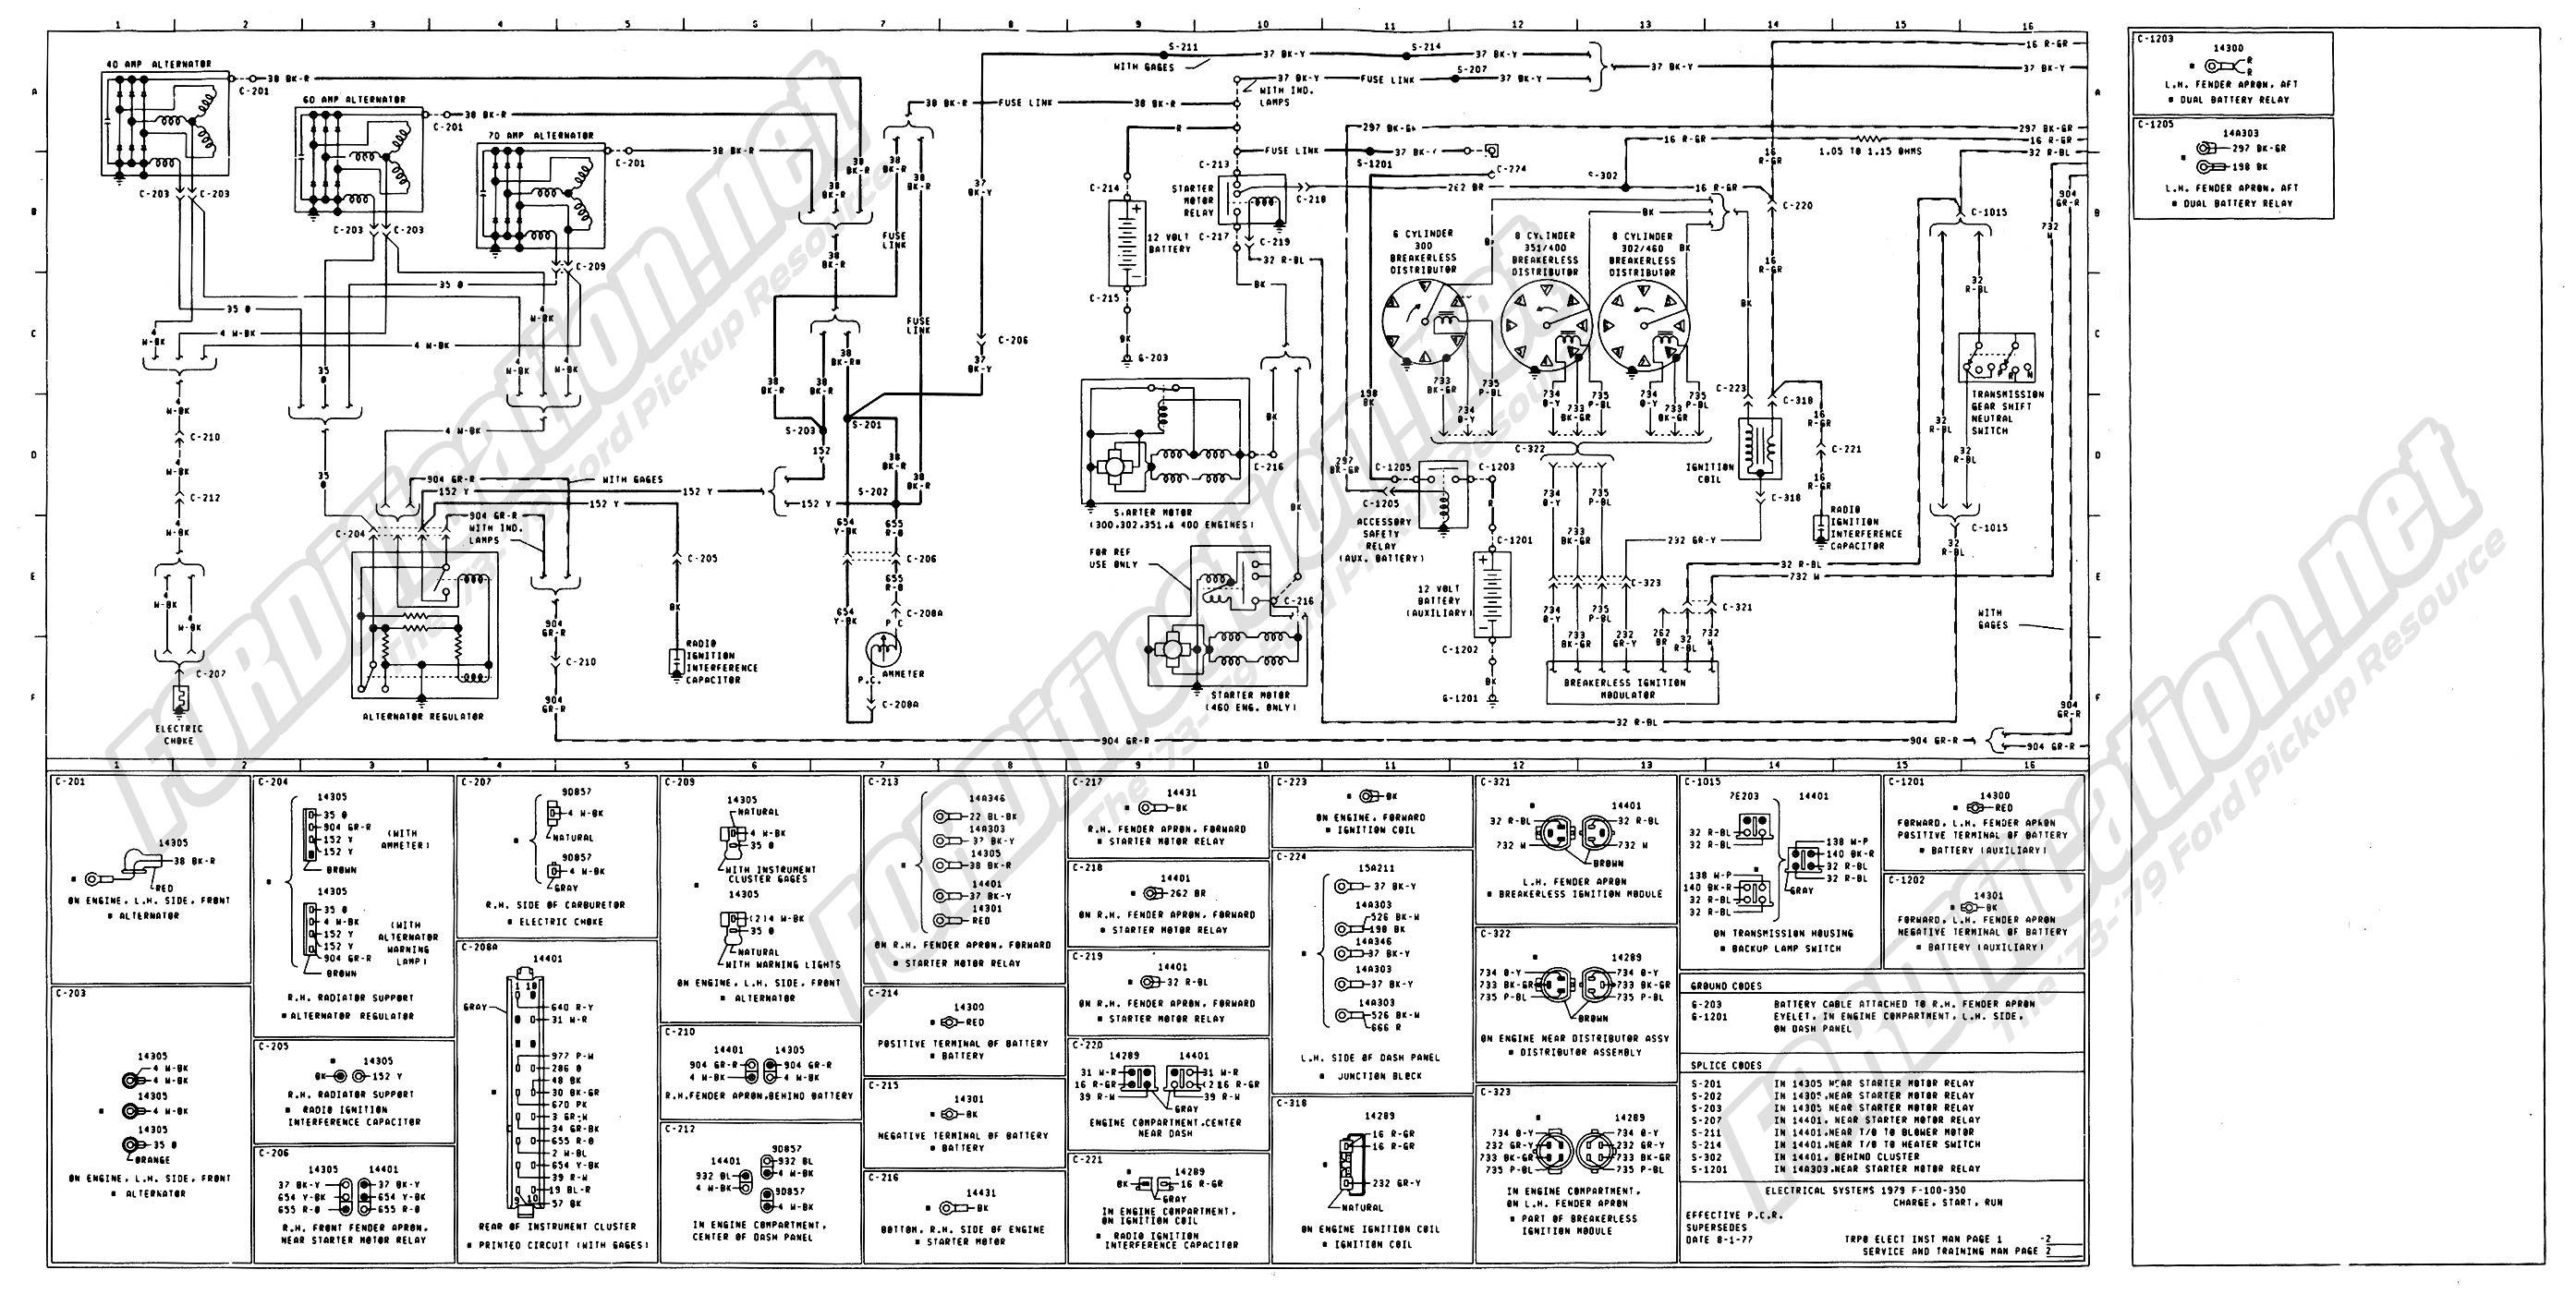 1983 F150 Instrument Cluster Wiring Diagram Archive Of Automotive 1994 E34 Fuse Box Simple Rh David Huggett Co Uk